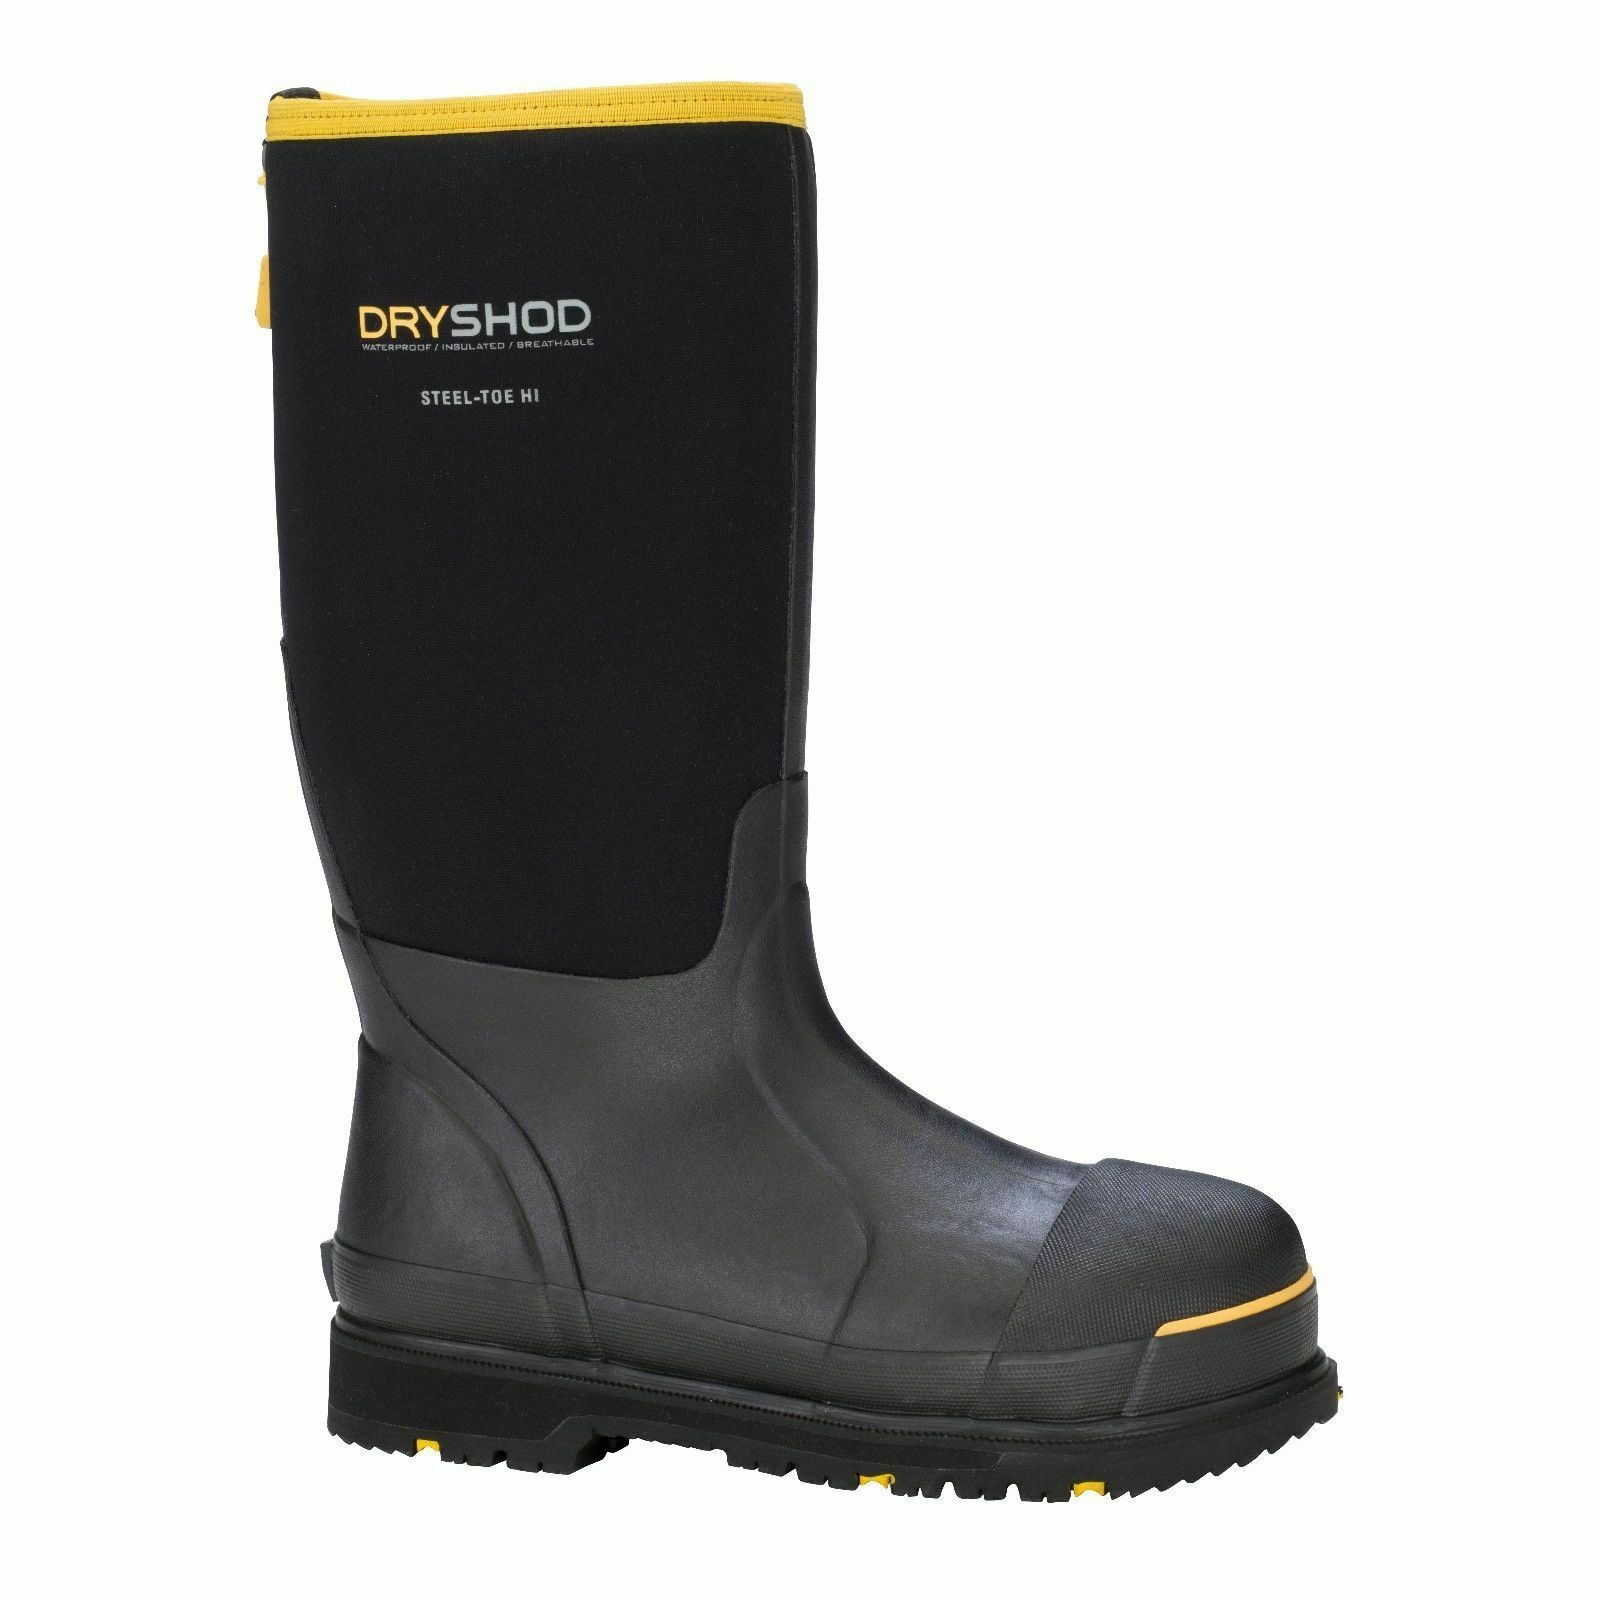 Dryshod Mens  Cold Weather Steel Toe Insulated Boots Size 11  STT-UH-BK